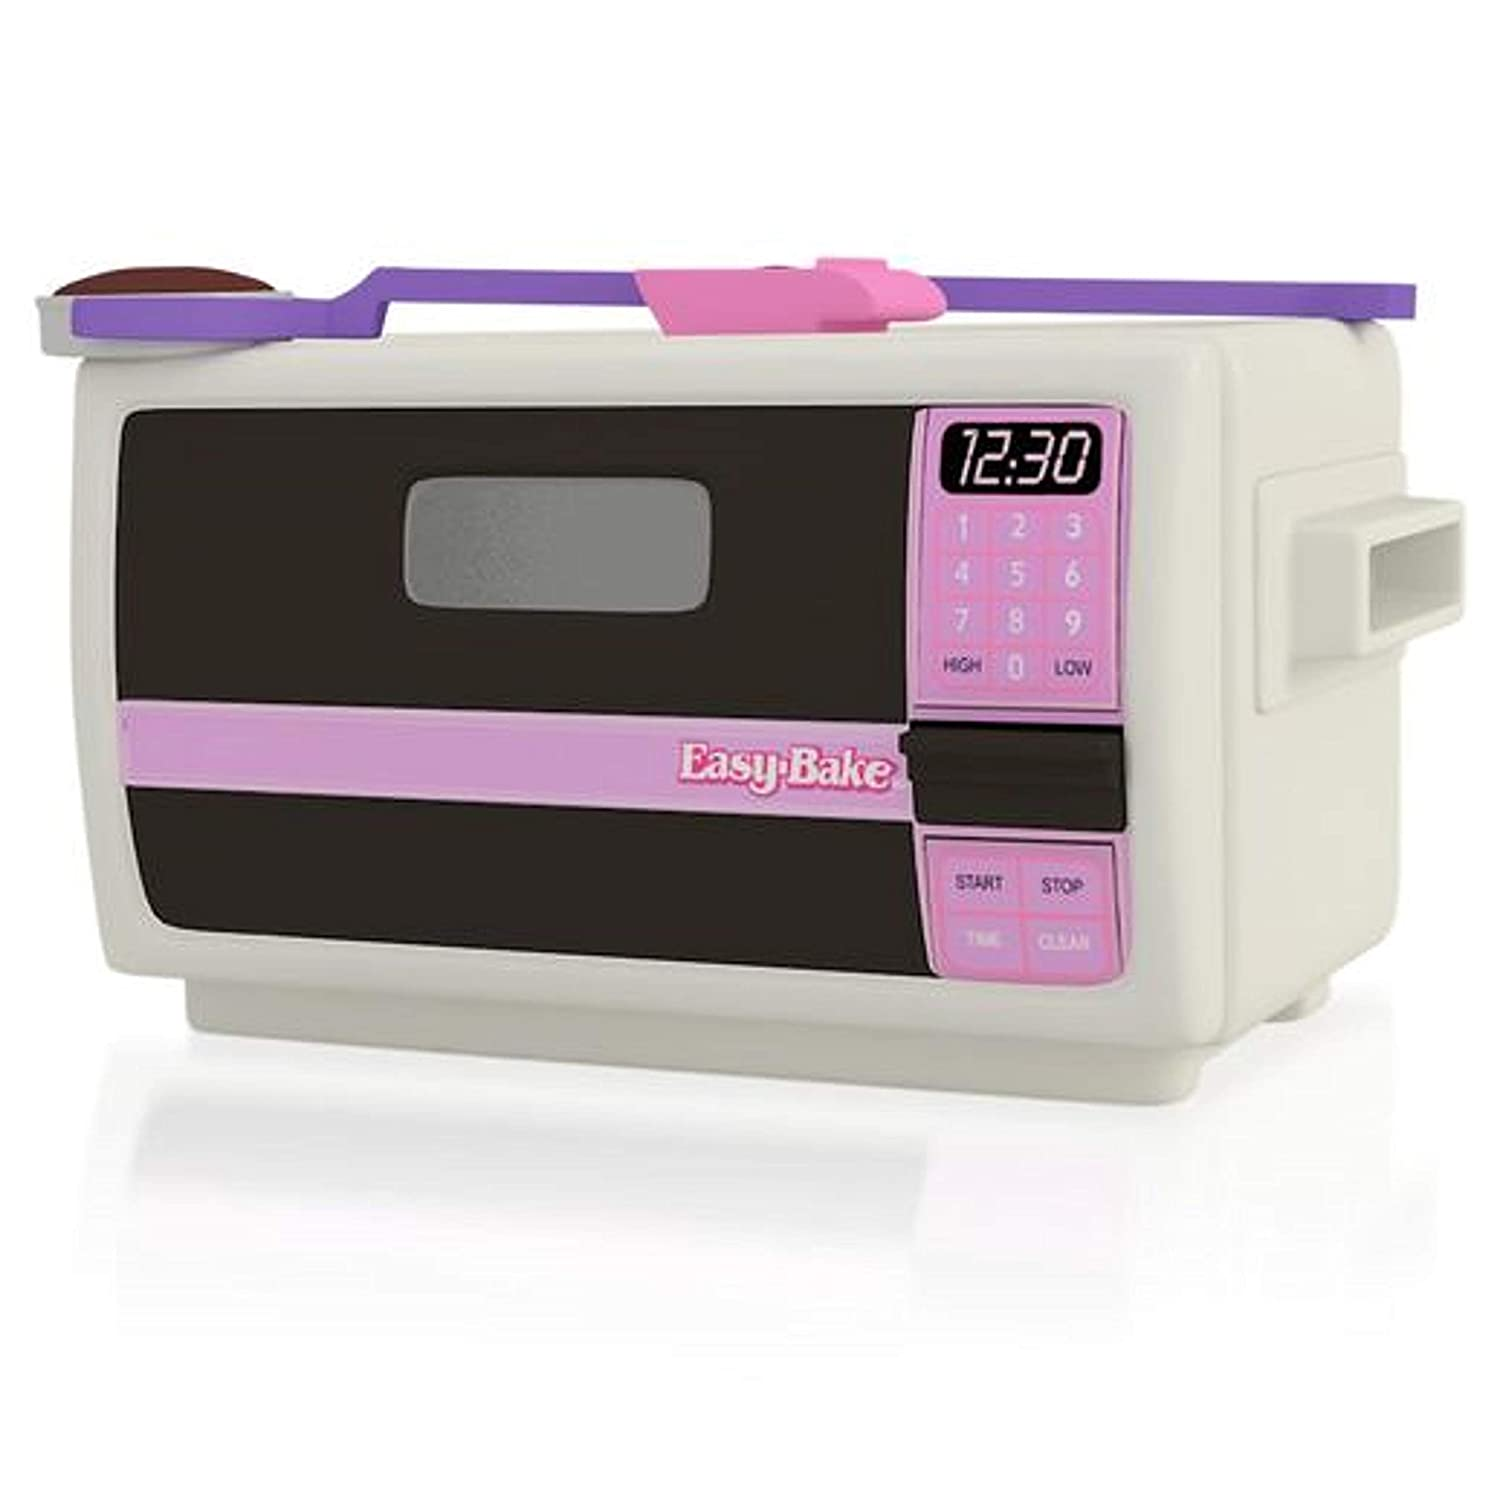 Hallmark 2015 Easy Bake Oven Ornament